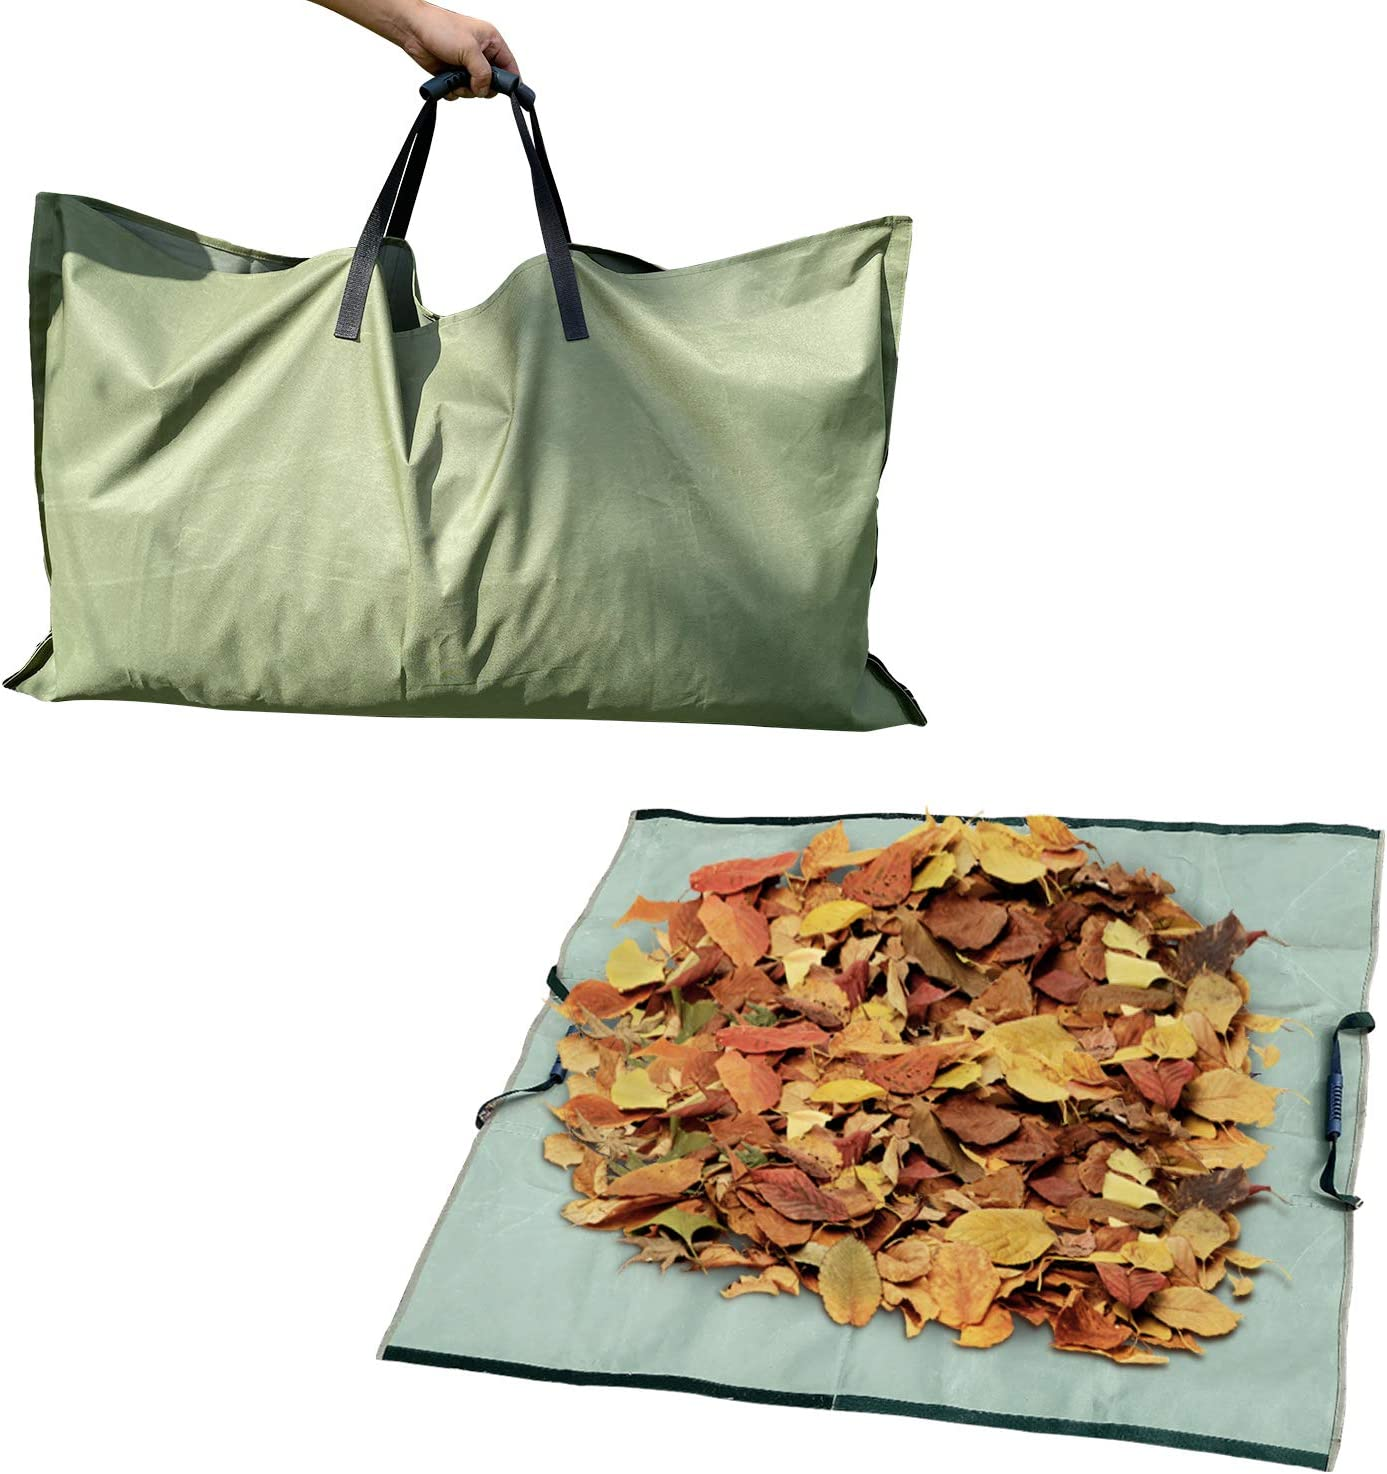 REPUBLIC SUN Leaf Bag, Garden Yard Lawn Pool Garden Leaf Waste Bags Oxford Cloth for Collecting Leaves - Reusable Heavy Duty Gardening Bags